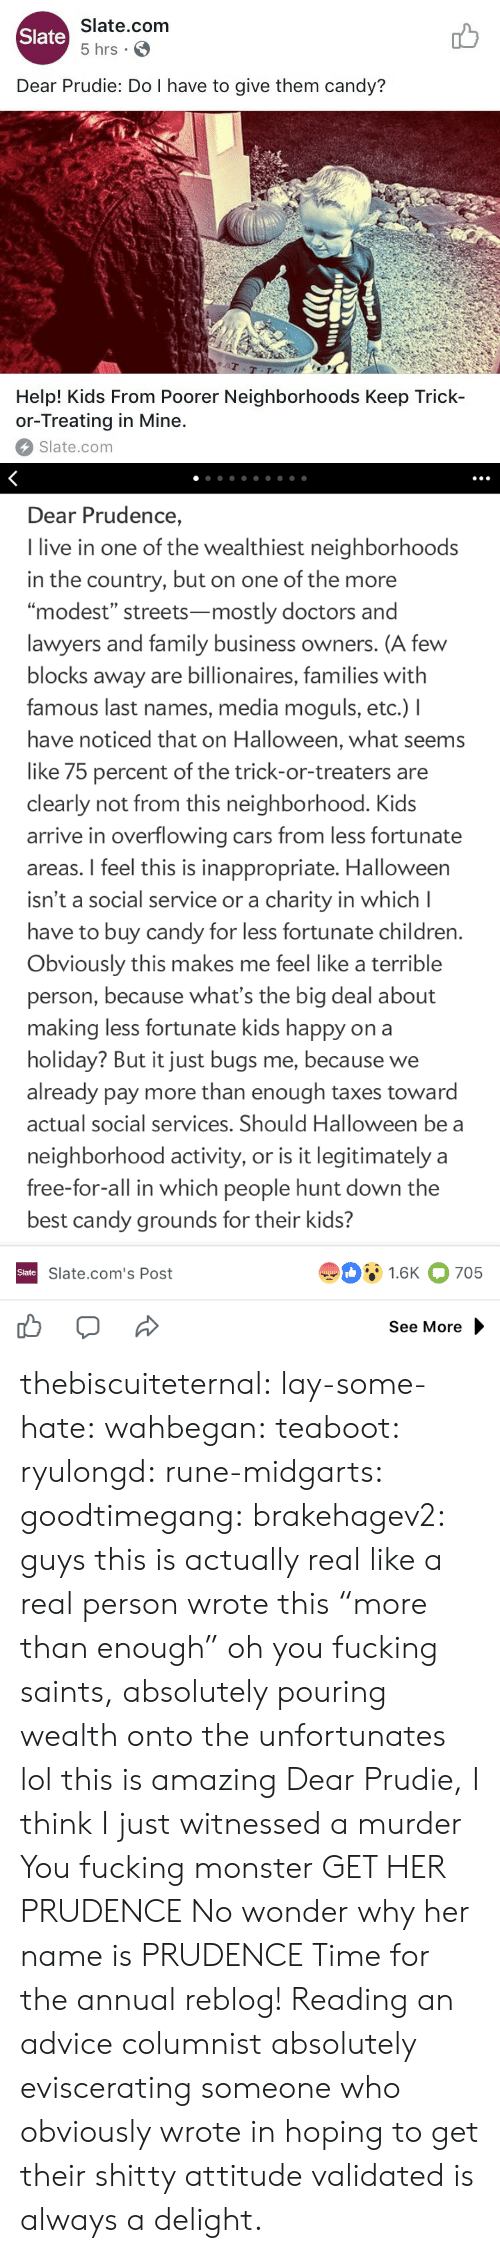 "oh you: Slate.com  5 hrs .  Slate  Dear Prudie: Do I have to give them candy?  aT  T-T  Help! Kids From Poorer Neighborhoods Keep Trick-  or-Treating in Mine.  Slate.com   Dear Prudence,  I live in one of the wealthiest neighborhoods  in the country, but on one of the more  ""modest"" streets-mostly doctors and  lawyers and family business owners. (A few  blocks away are billionaires, families with  famous last names, media moguls, etc.) I  have noticed that on Halloween, what seems  like 75 percent of the trick-or-treaters are  clearly not from this neighborhood. Kids  arrive in overflowing cars from less fortunate  areas. I feel this is inappropriate. Halloween  isn't a social service or a charity in which l  have to buy candy for less fortunate children  Obviously this makes me feel like a terrible  person, because what's the big deal about  making less fortunate kids happy on a  holiday? But it just bugs me, because we  already pay more than enough taxes toward  actual social services. Should Halloween be a  neighborhood activity, or is it legitimately a  free-for-all in which people hunt down the  best candy grounds for their kids?  91.6K 705  Slate  Slate.com's Post  See More thebiscuiteternal:  lay-some-hate:  wahbegan:  teaboot:  ryulongd:  rune-midgarts:  goodtimegang:  brakehagev2:  guys this is actually real like a real person wrote this  ""more than enough"" oh you fucking saints, absolutely pouring wealth onto the unfortunates   lol this is amazing   Dear Prudie, I think I just witnessed a murder  You fucking monster  GET HER PRUDENCE   No wonder why her name is PRUDENCE   Time for the annual reblog! Reading an advice columnist absolutely eviscerating someone who obviously wrote in hoping to get their shitty attitude validated is always a delight."